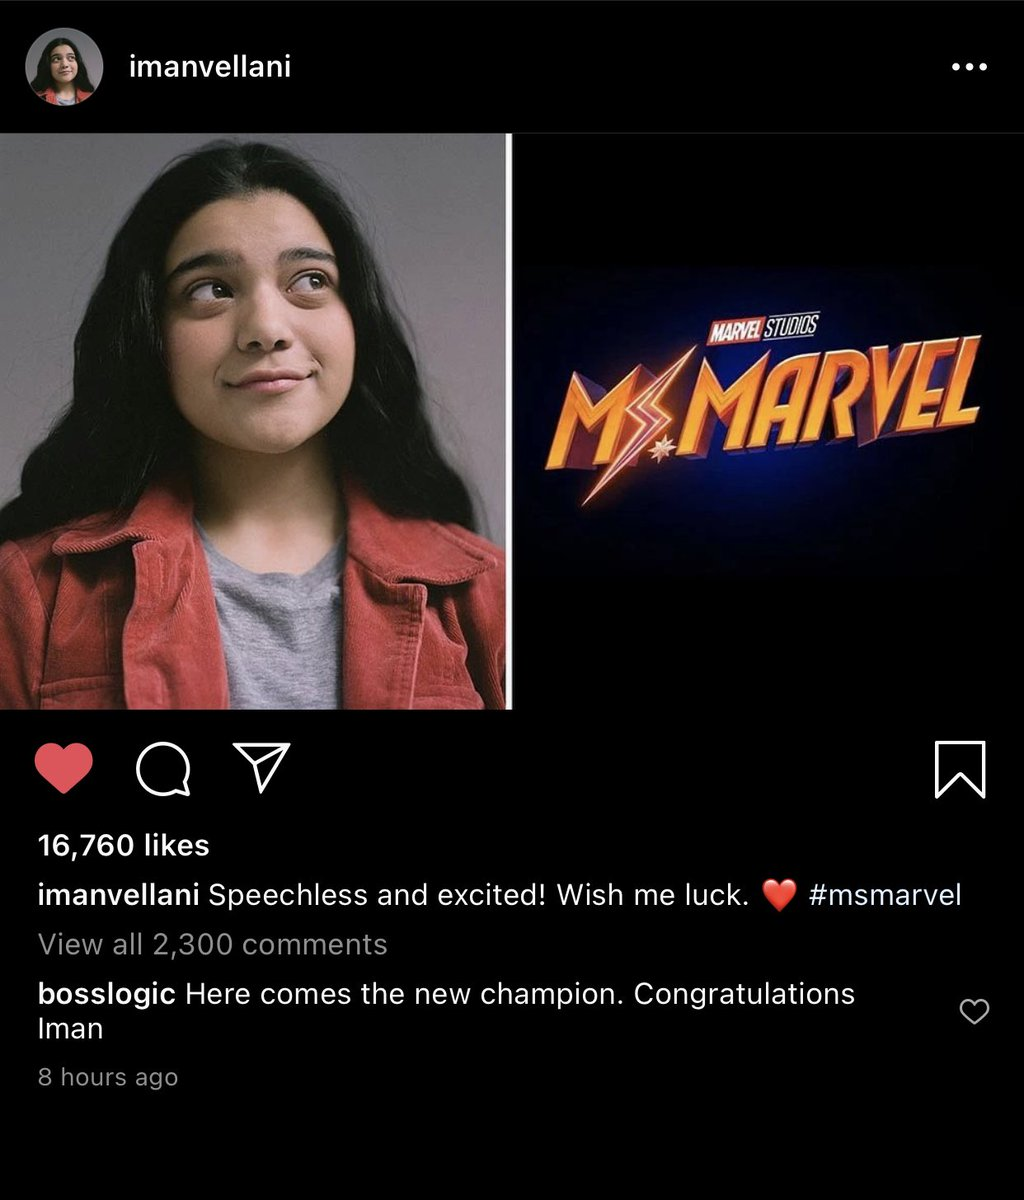 I hope this is Iman Vellani's actual Instagram account because she's so precious 🥺